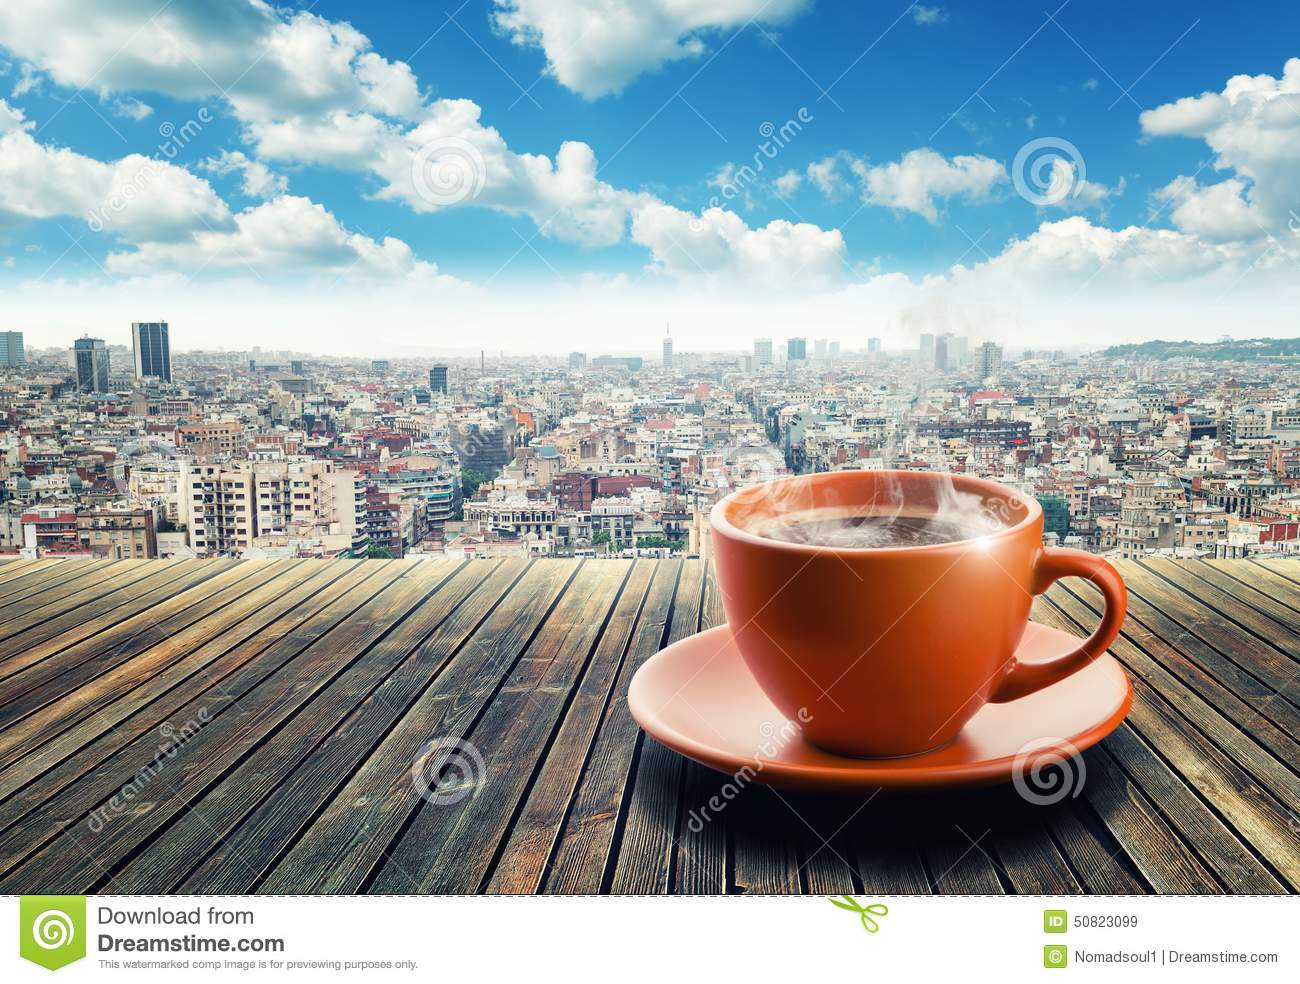 Cup Of Coffee On City Background Stock Photo - Image: 50823099